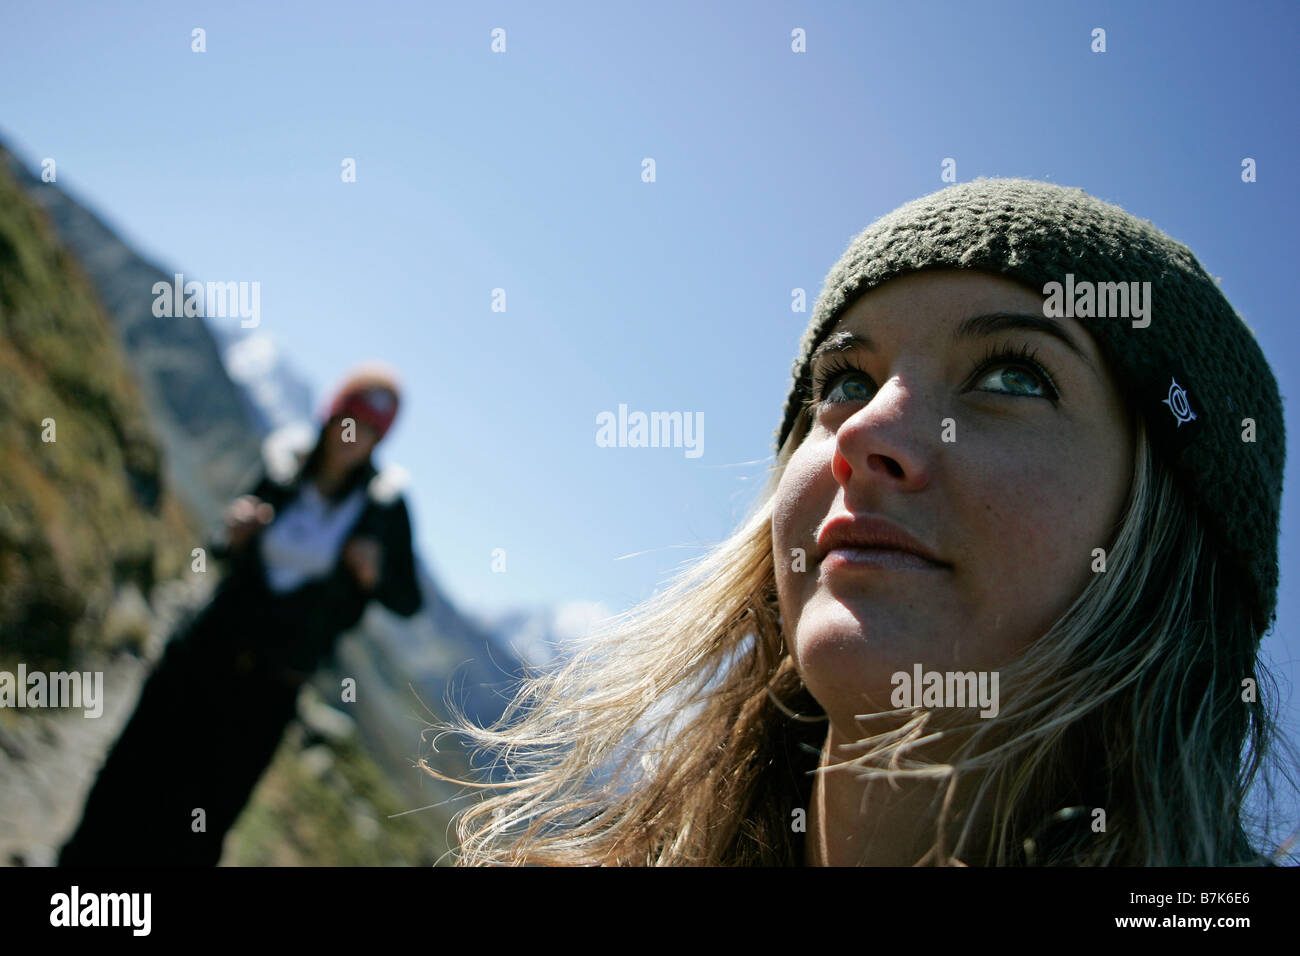 Young girls (19) hiking in front of Mont Blanc, Chamonix, France - Stock Image